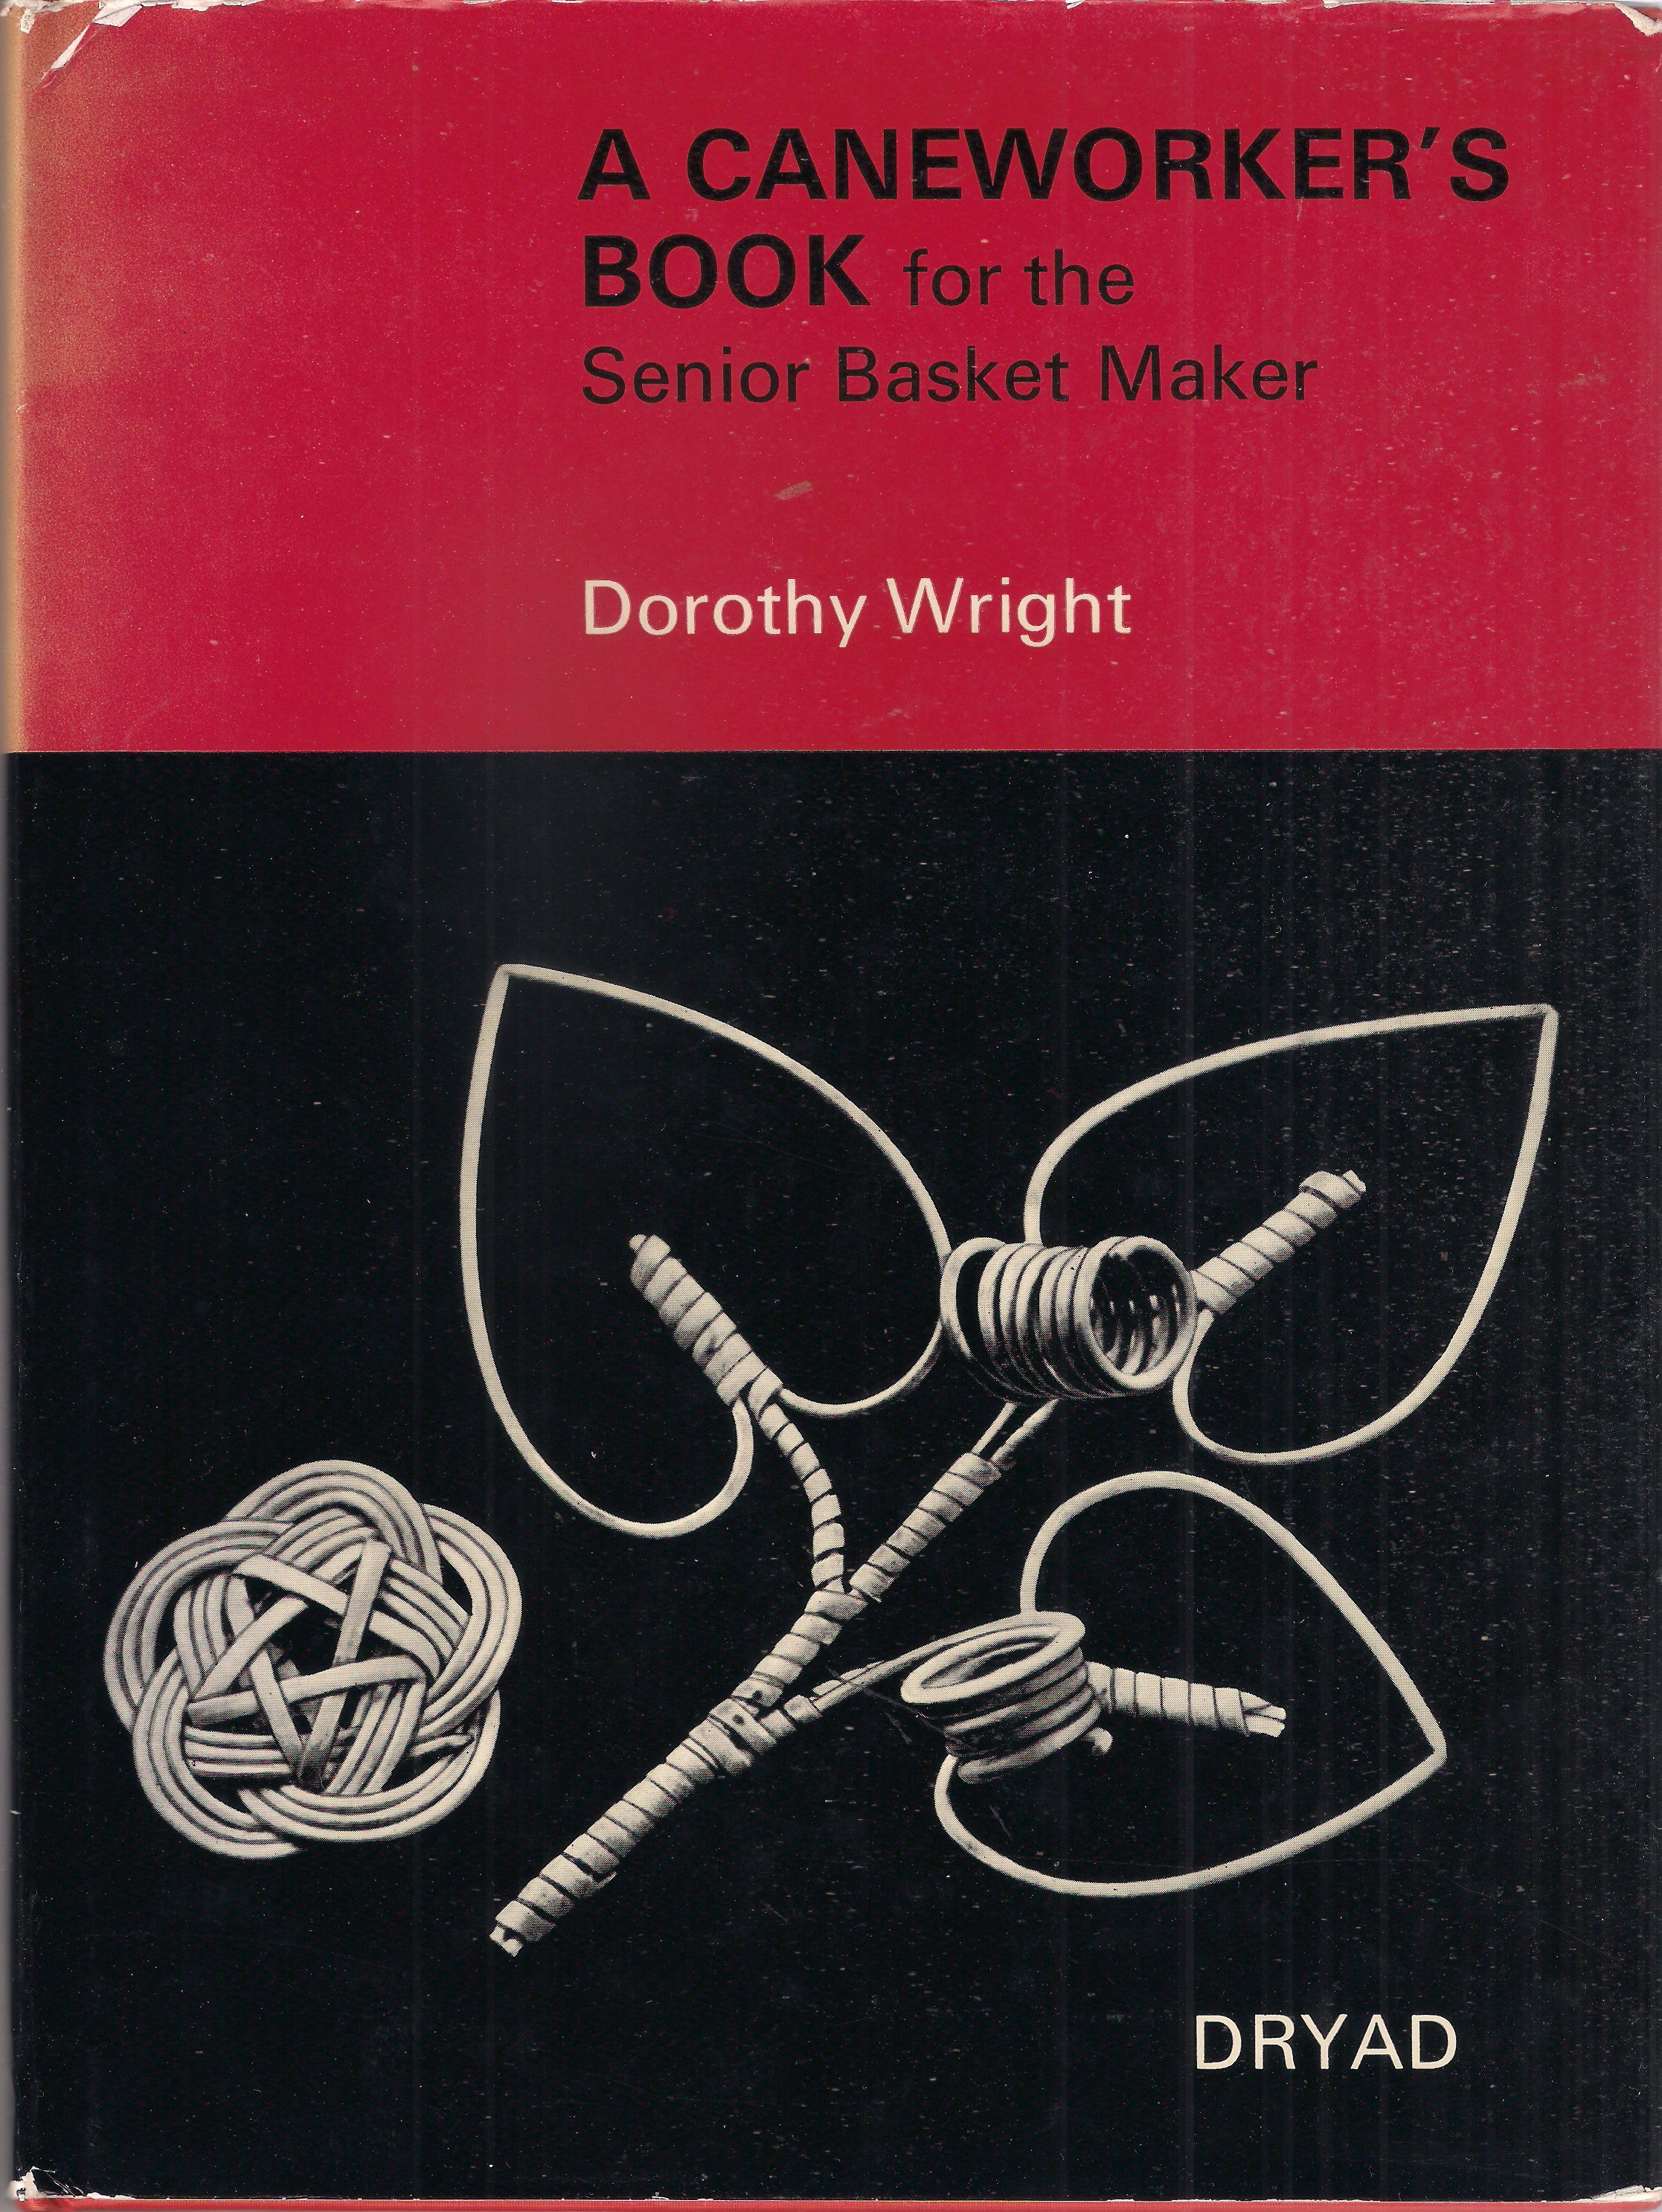 A Caneworker's Book for the Senior Basket Maker Book Cover